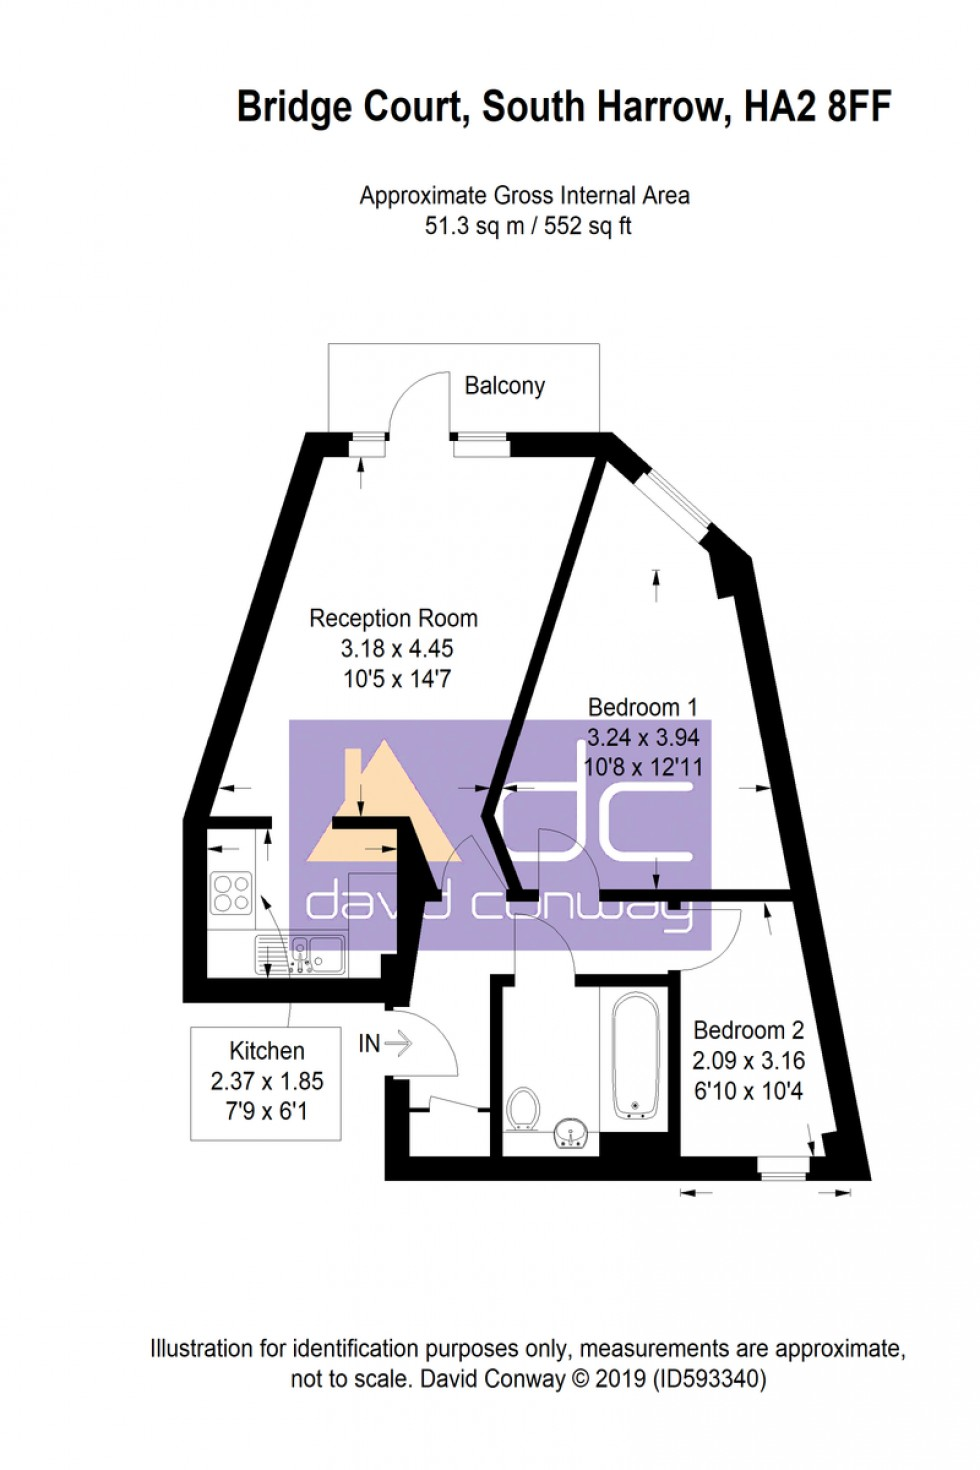 Floorplan for Bridge Court, Stanley Road, HA2 8FF